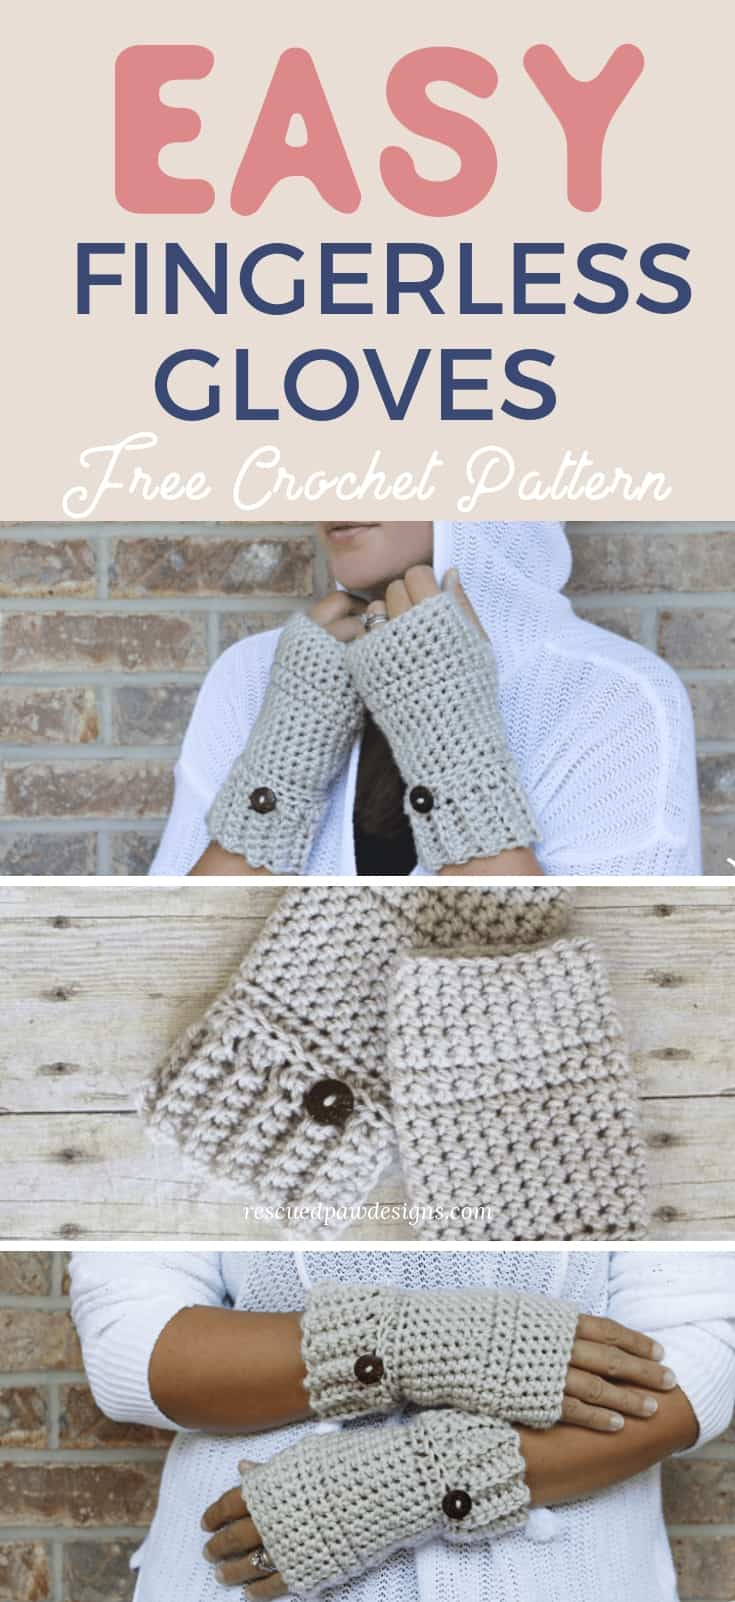 Simple Crochet Wrist Warmers